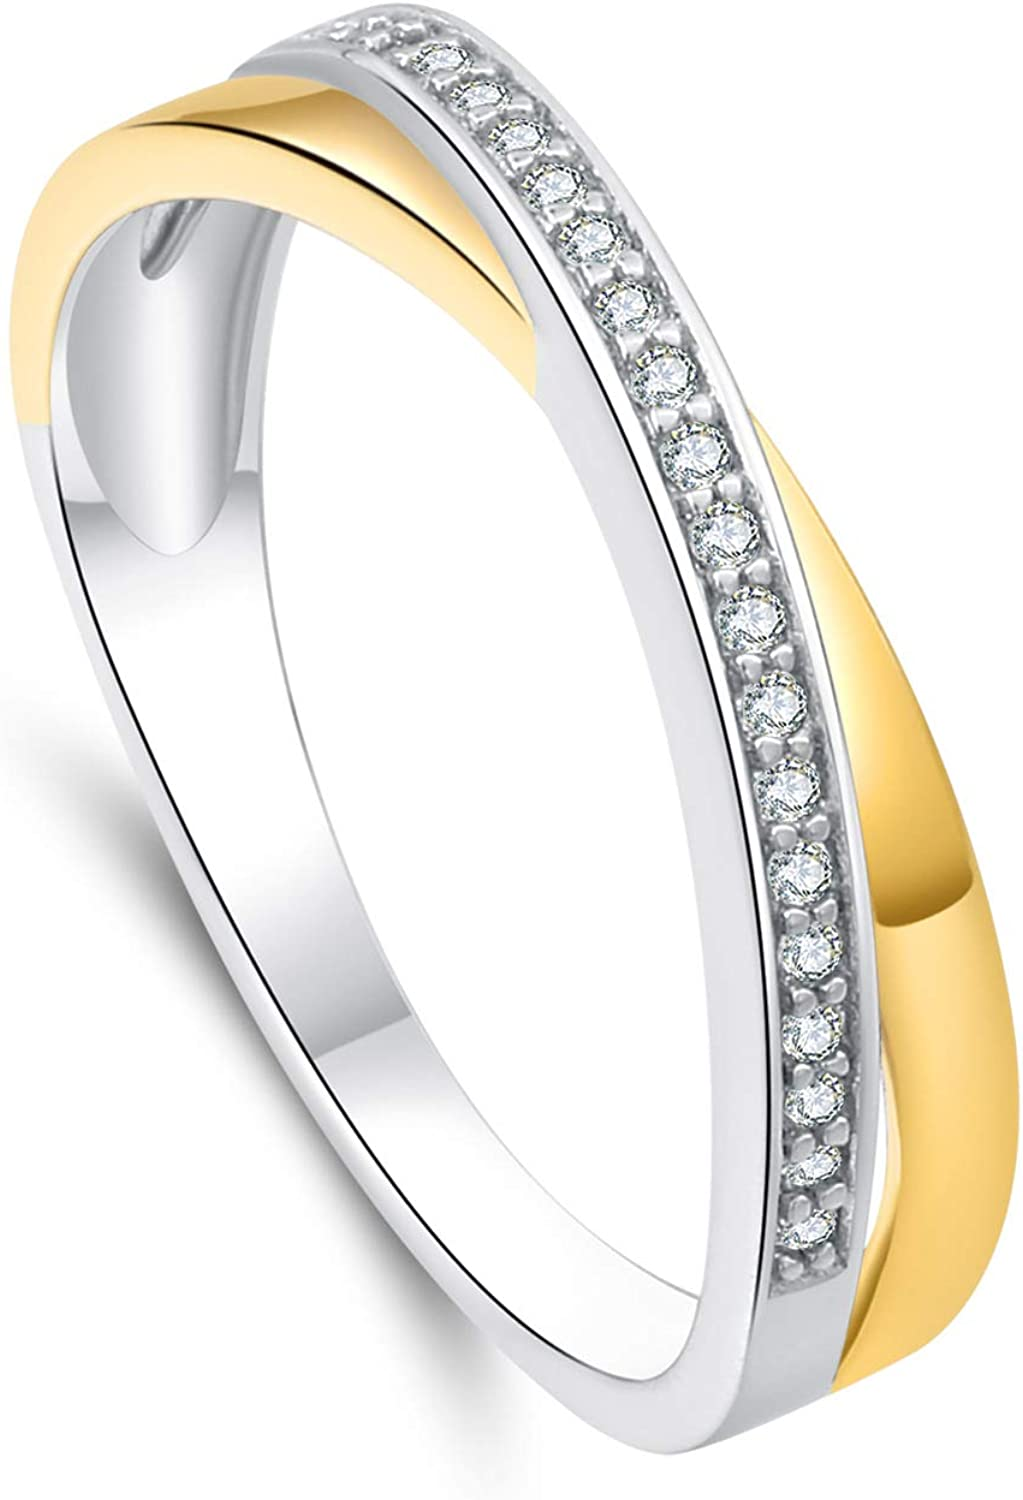 SA SILVERAGE Sterling Silver 18k Plated Rings with Cubic Zirconia for Girl Friend Birthday Gift